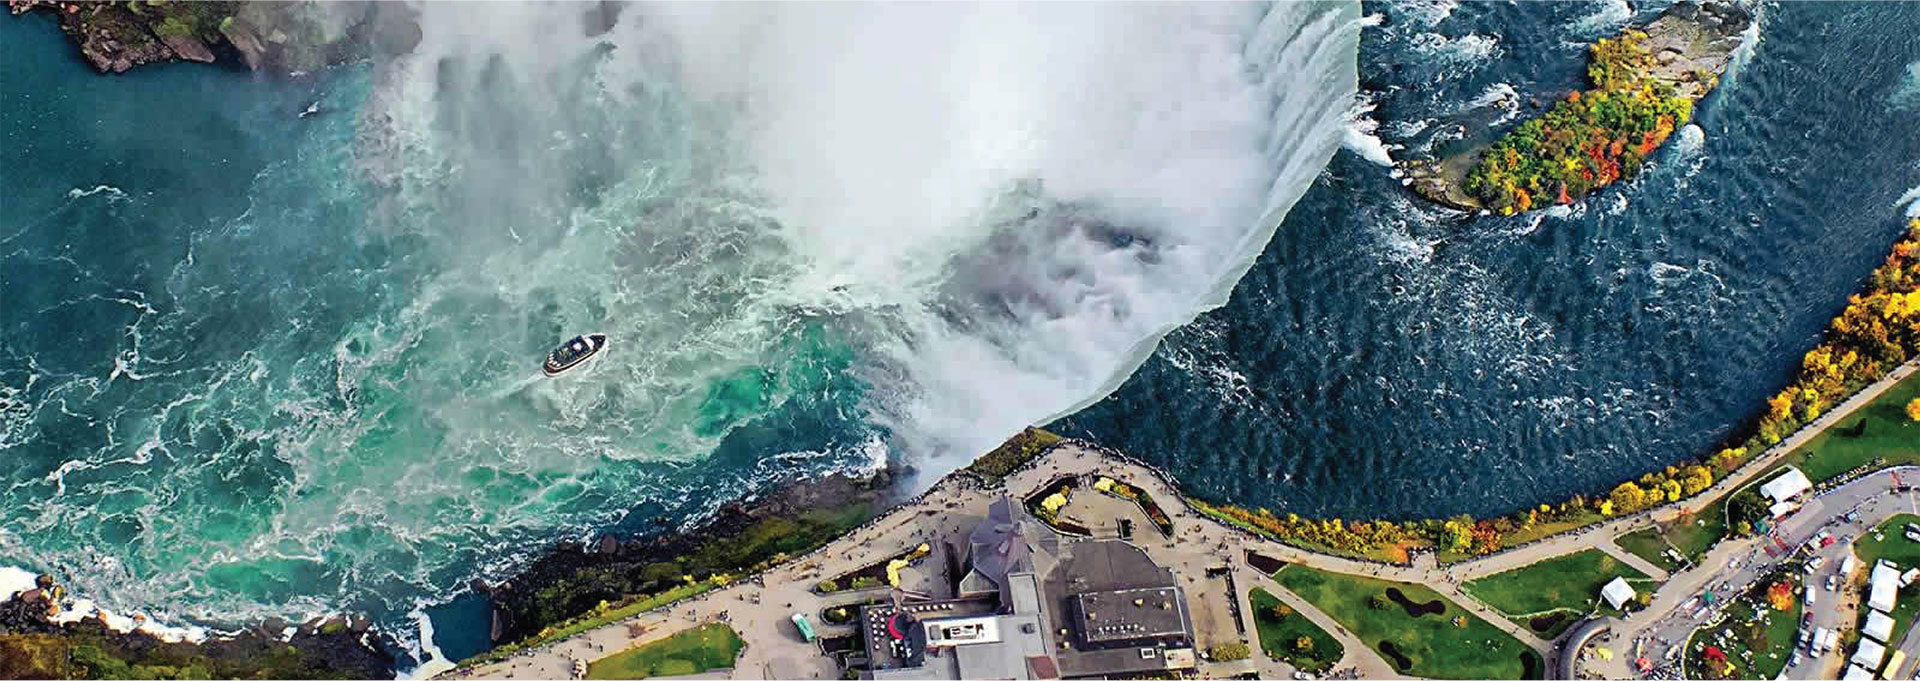 Niagara Falls Visitors - Fallsview Group